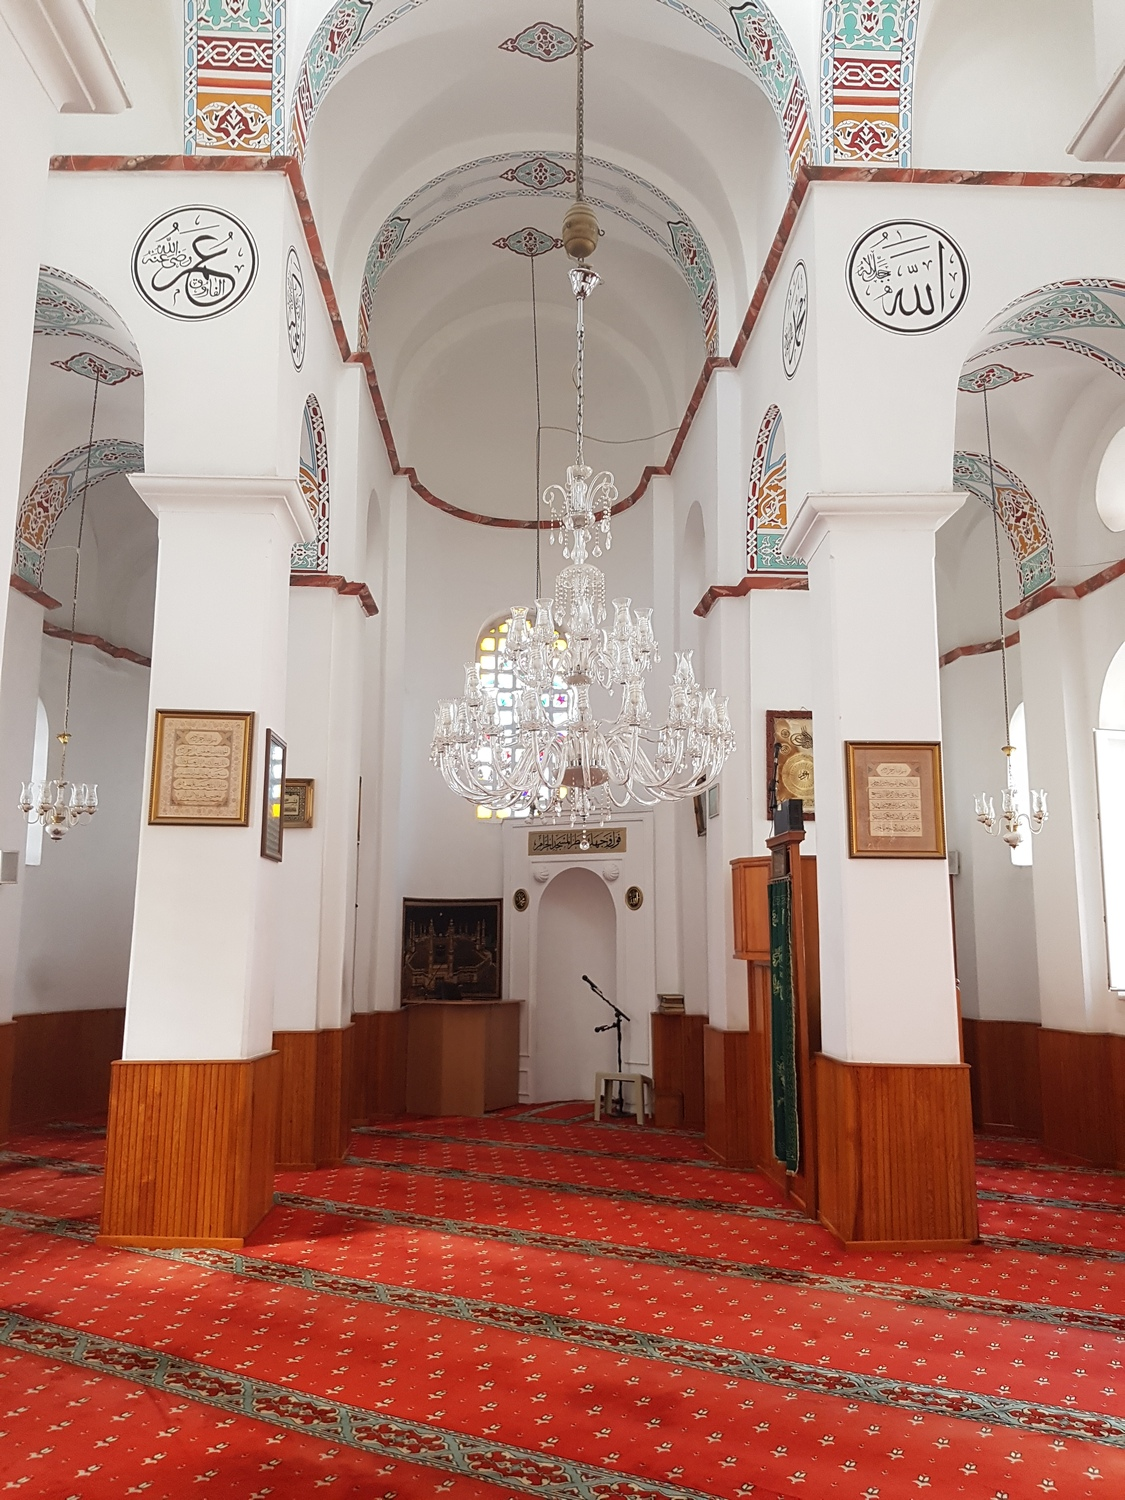 The interior of the Bodrum Mosque - with the assymetrical placement of the mihrab